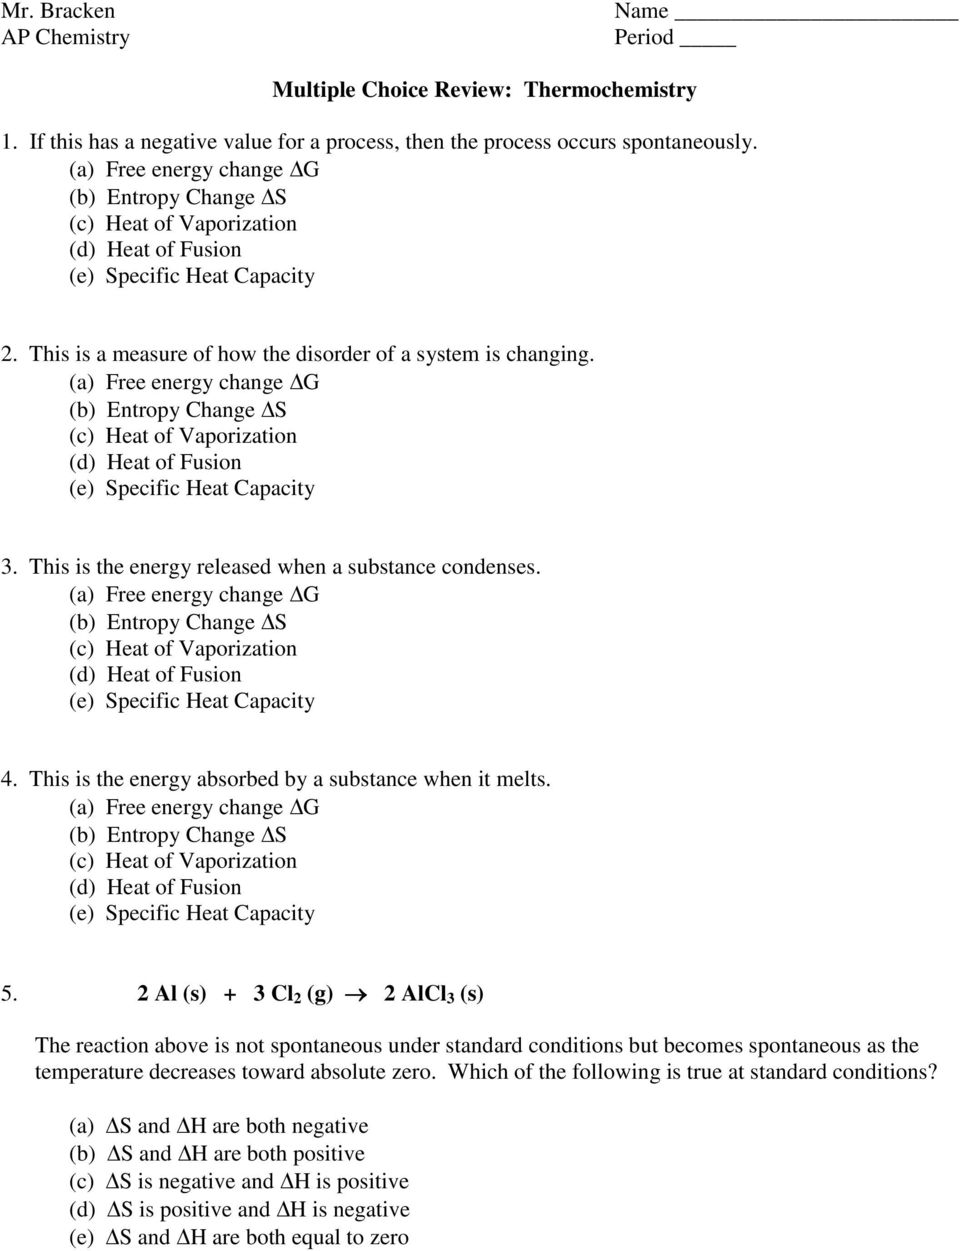 Mr Bracken Multiple Choice Review Thermochemistry Pdf